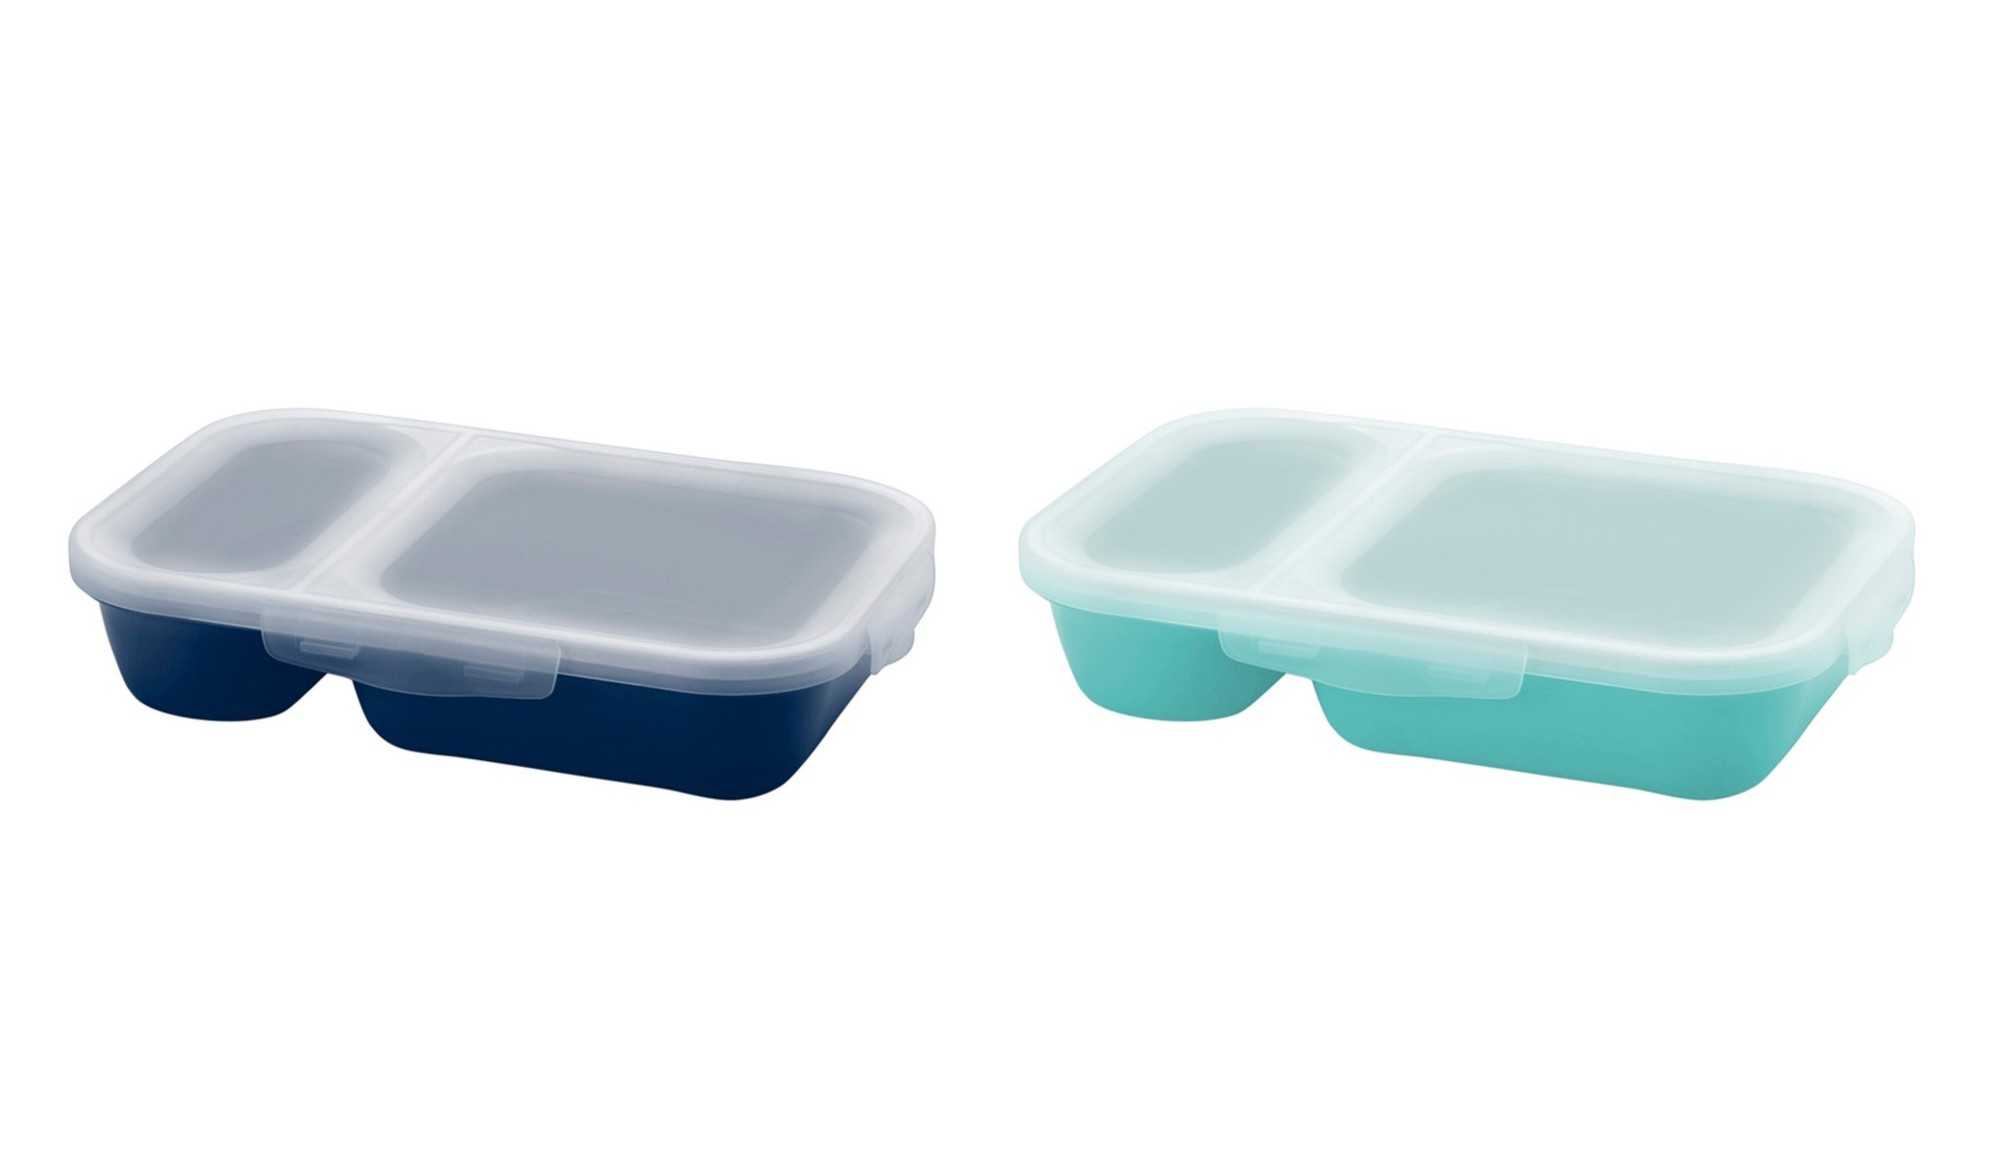 Nude Food Movers Duo Bento Lunch Box